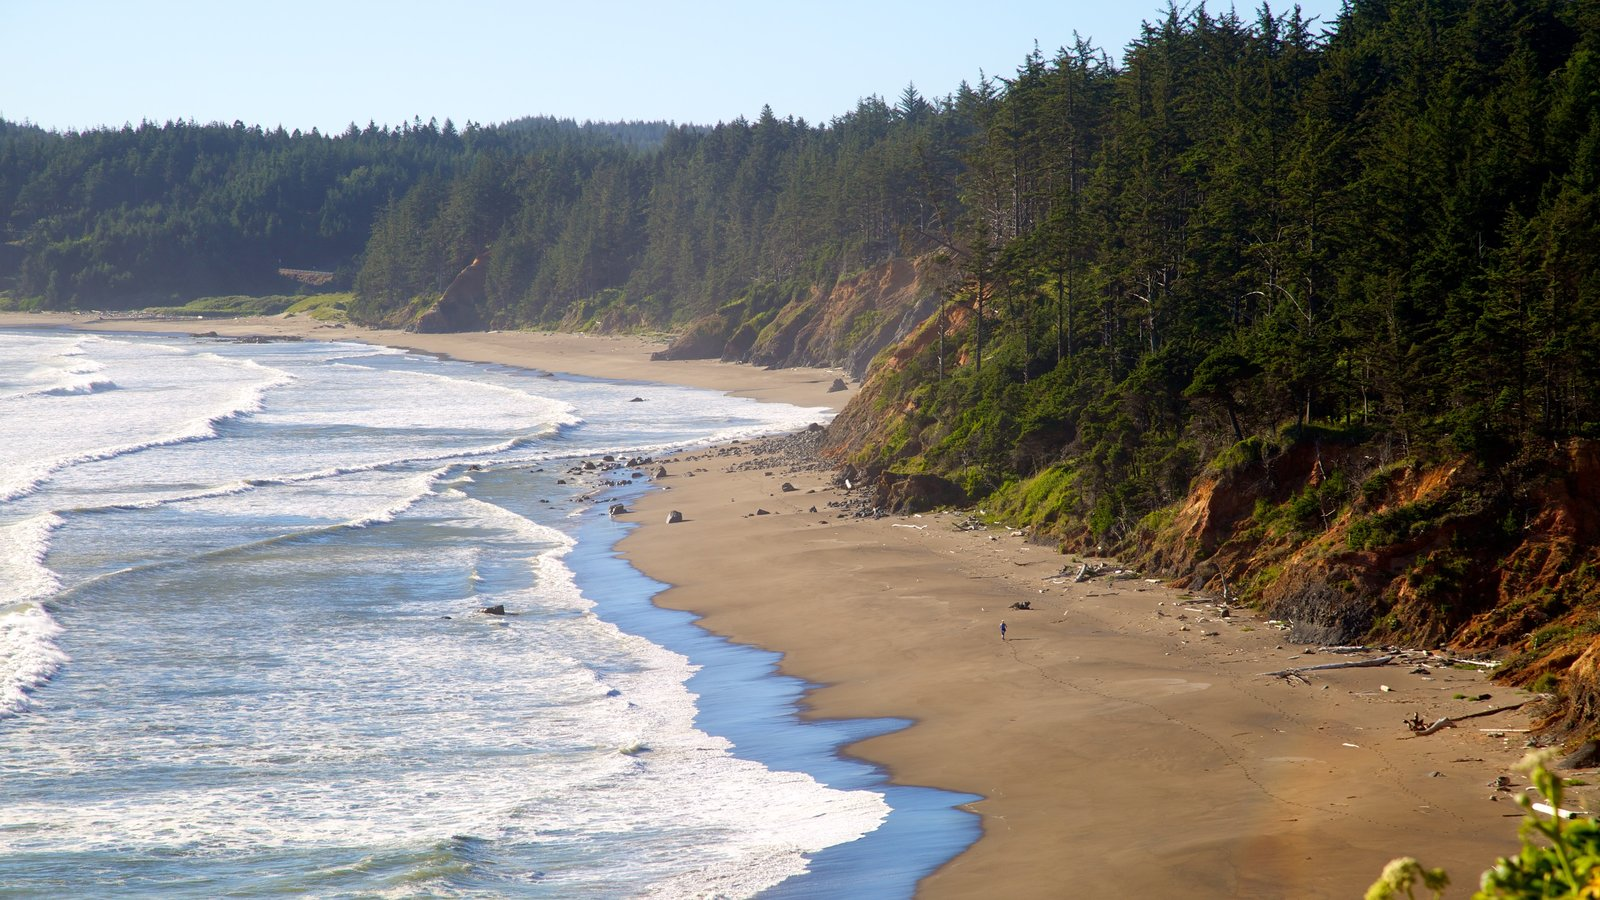 Port Orford which includes a beach